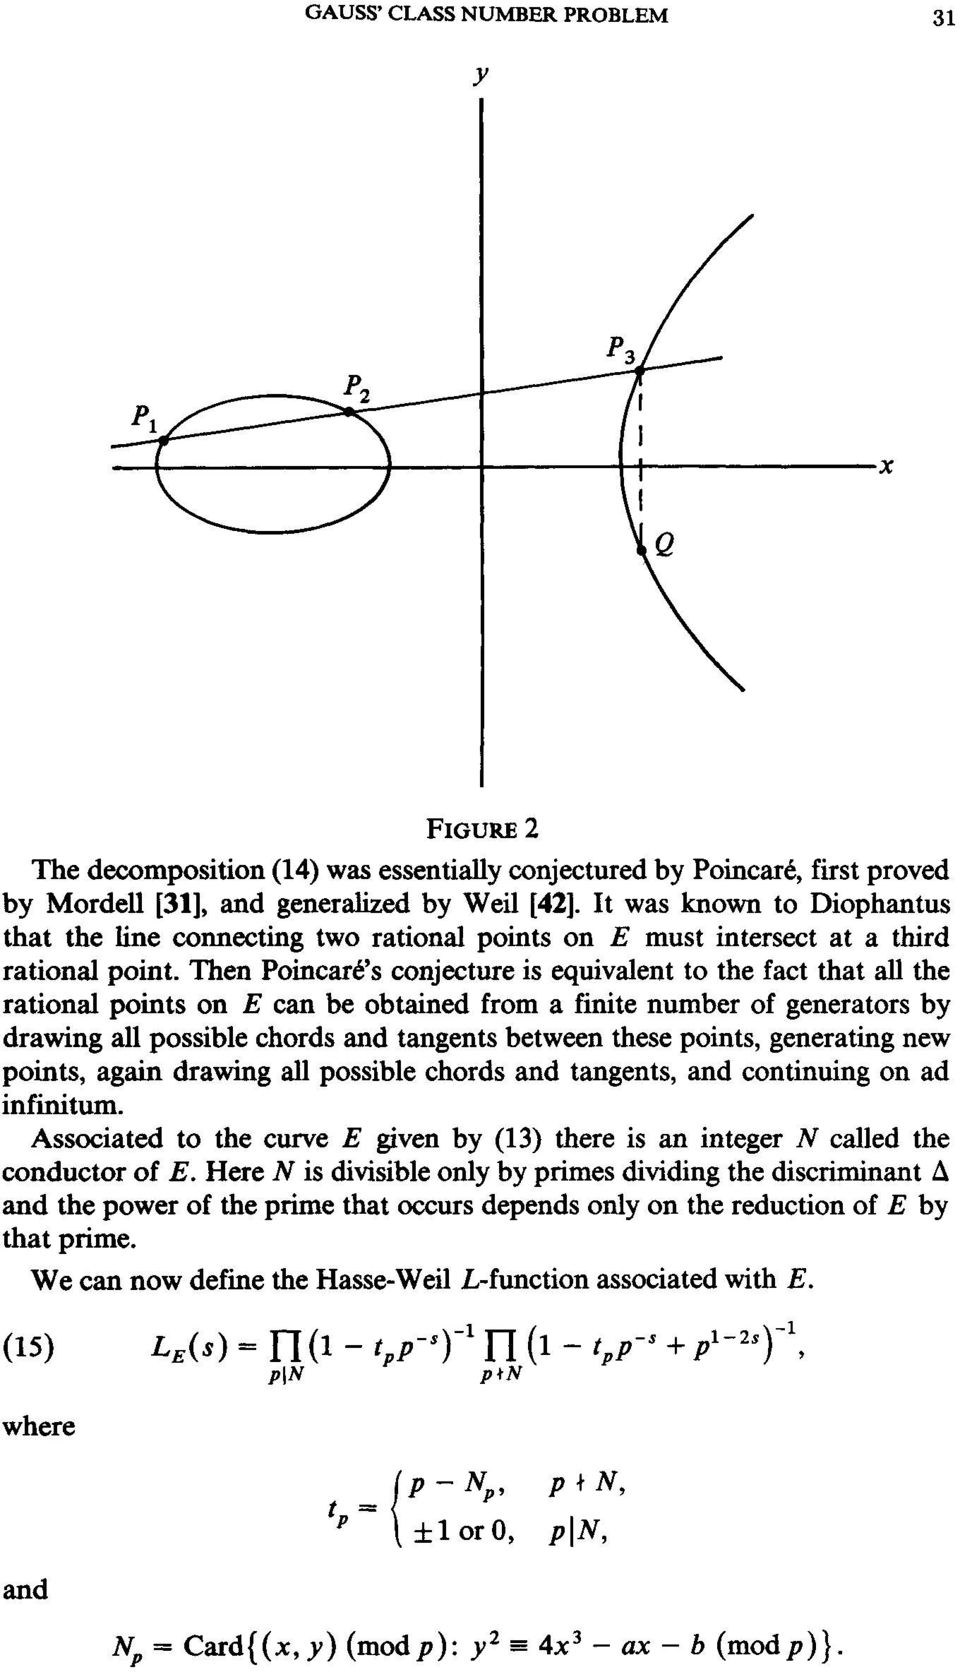 Then Poincaré's conjecture is equivalent to the fact that all the rational points on E can be obtained from a finite number of generators by drawing all possible chords and tangents between these